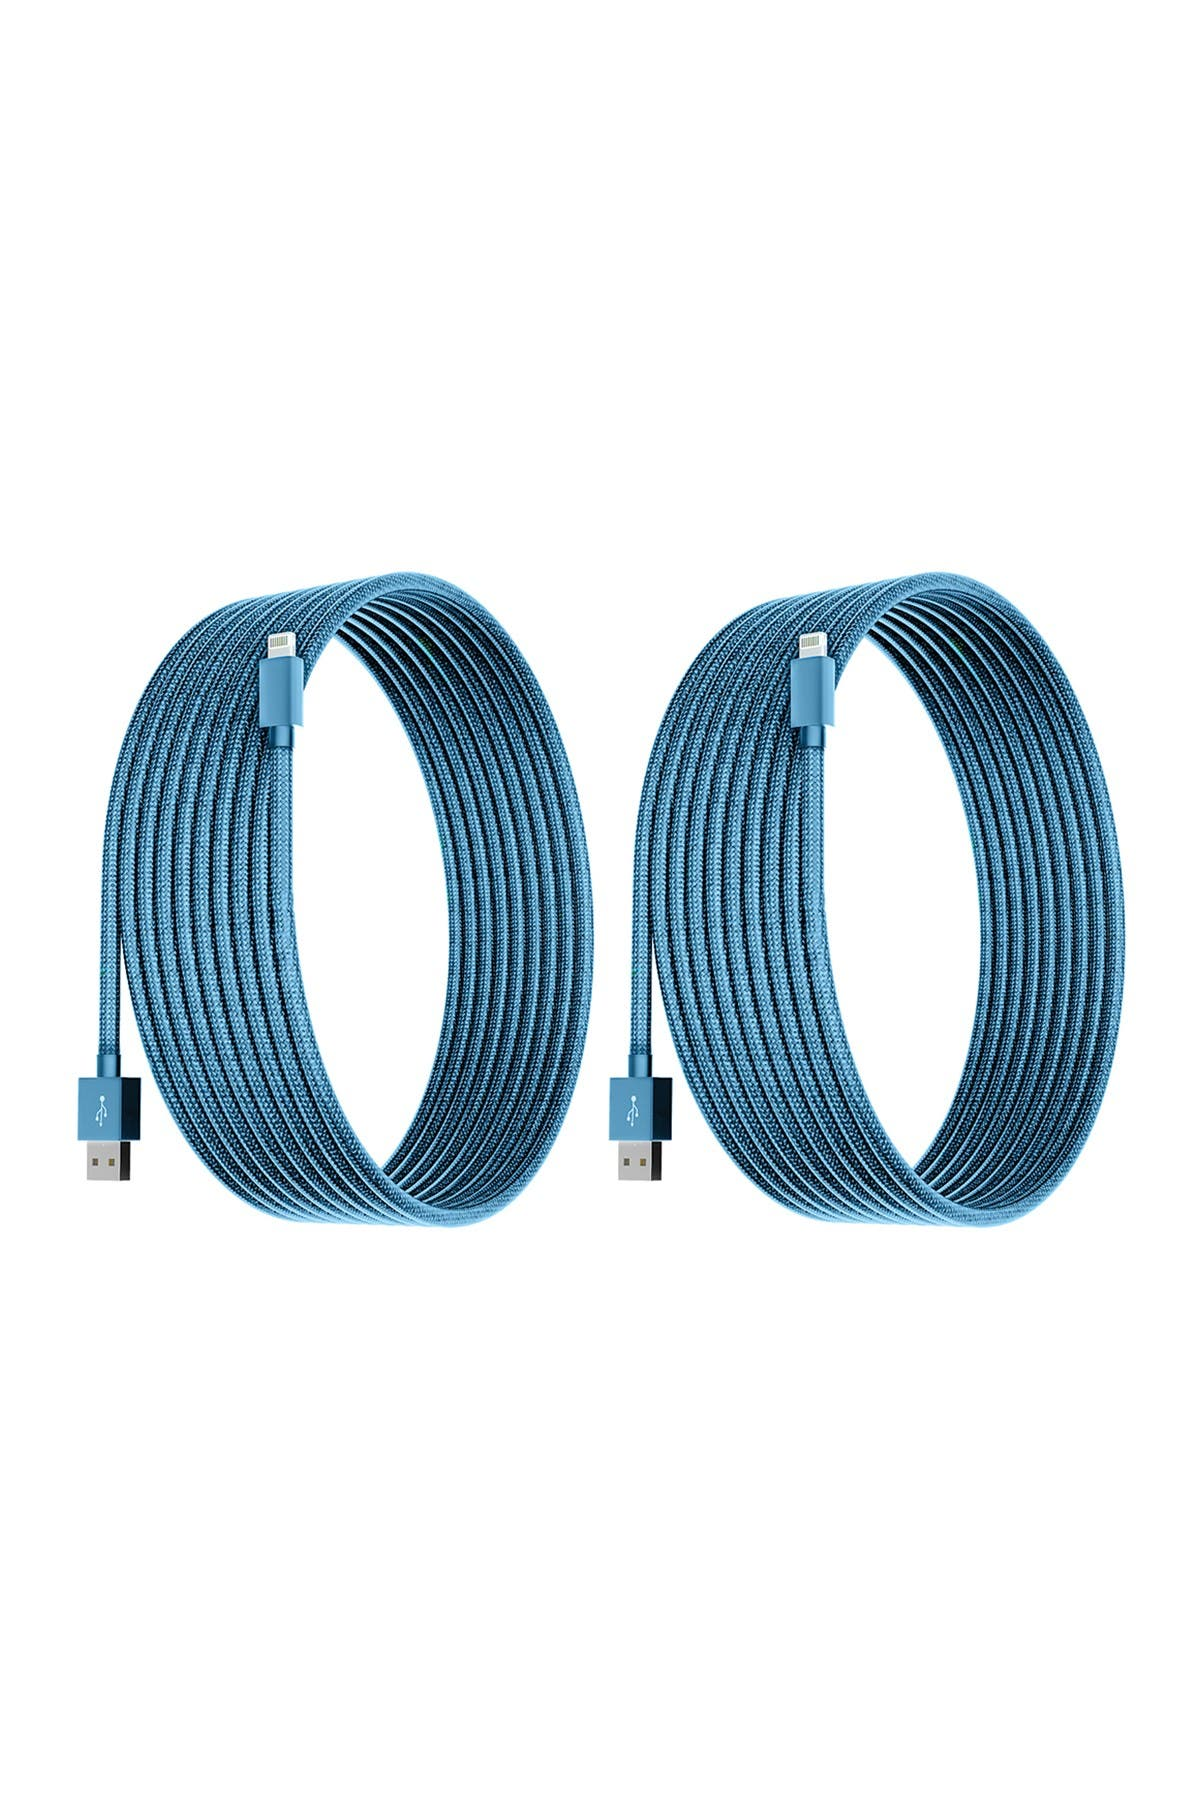 Image of POSH TECH Sky Blue 10 Ft Apple Certified Charge N Sync Lightning Cables - Pack of 2